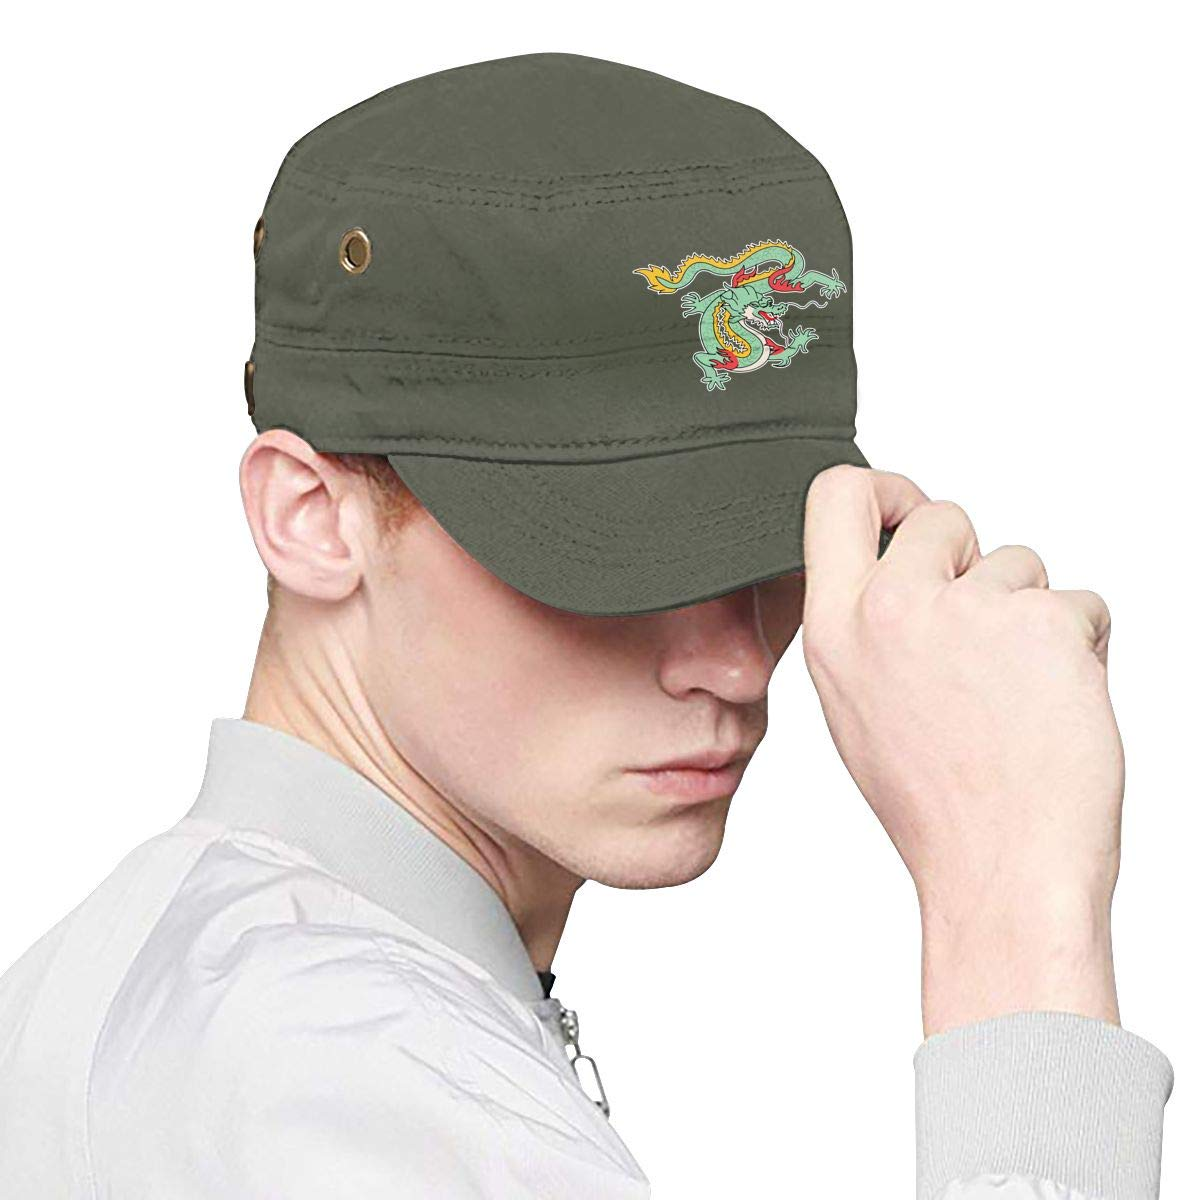 Chinese Dragon Unisex Adult Cotton Military Army Cap Flat Top Hat